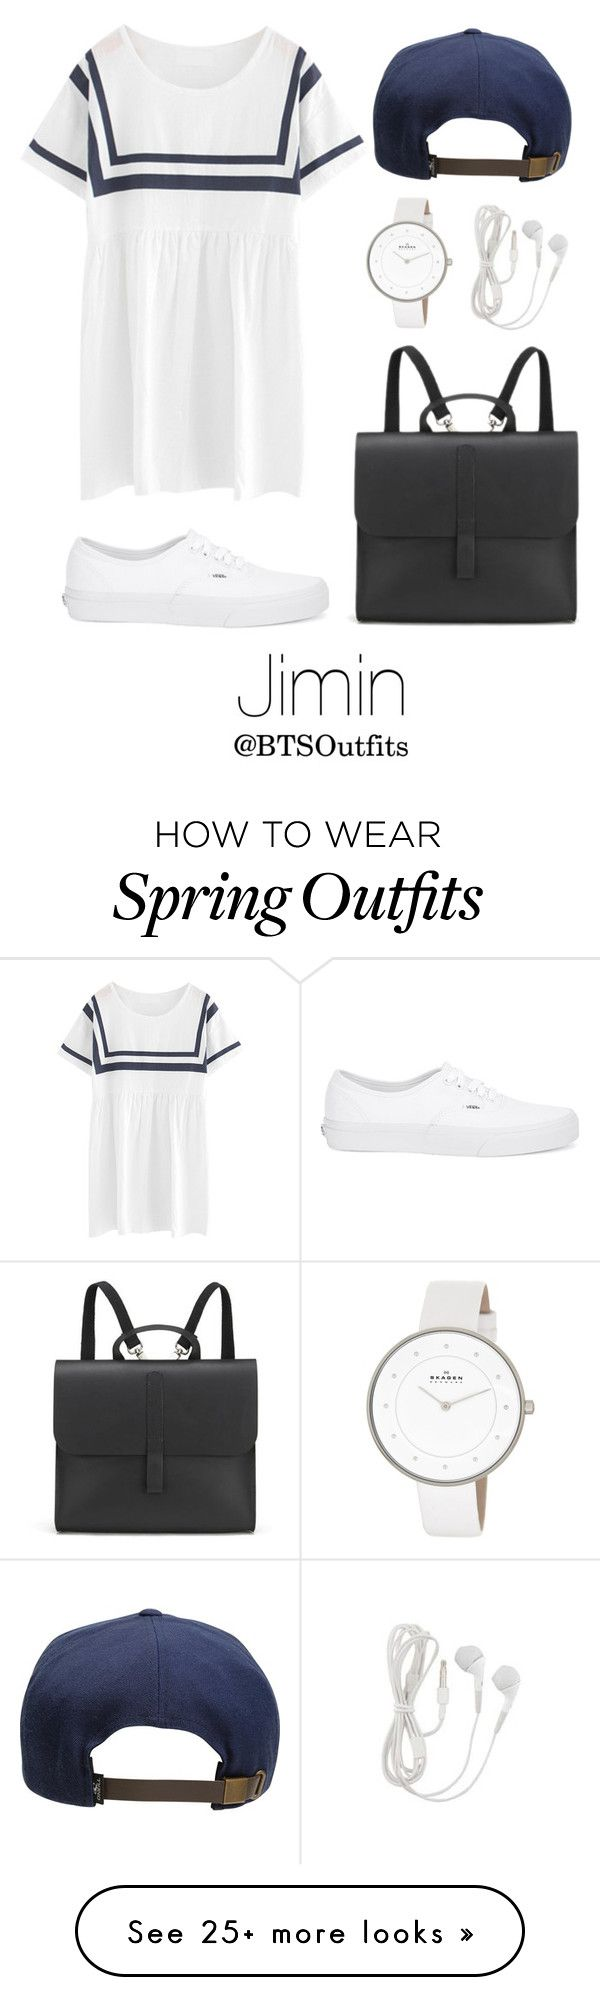 """Spring Outfit Inspired by Jimin"" by btsoutfits on Polyvore featuring Chicnova Fashion, O'Neill, Danielle Foster, Vans, Skagen, women's clothing, women, female, woman and misses"